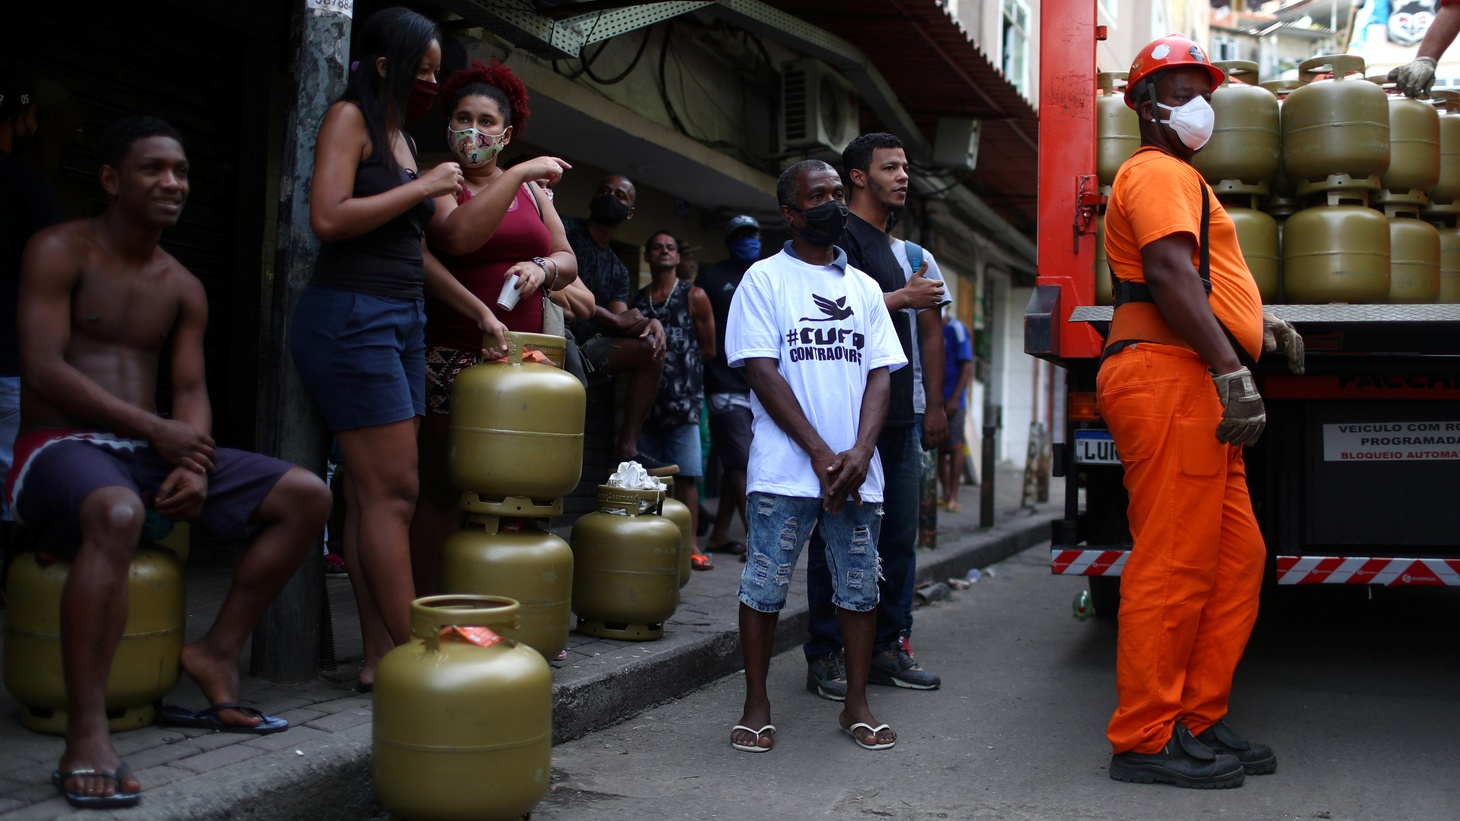 People wait to receive donations of cooking gas bottles distributed by Central Unica das Favelas (CUFA), a Brazilian non-governmental organization, following the coronavirus disease outbreak, in the Rocinha slum in Rio de Janeiro, Brazil May 22, 2020.